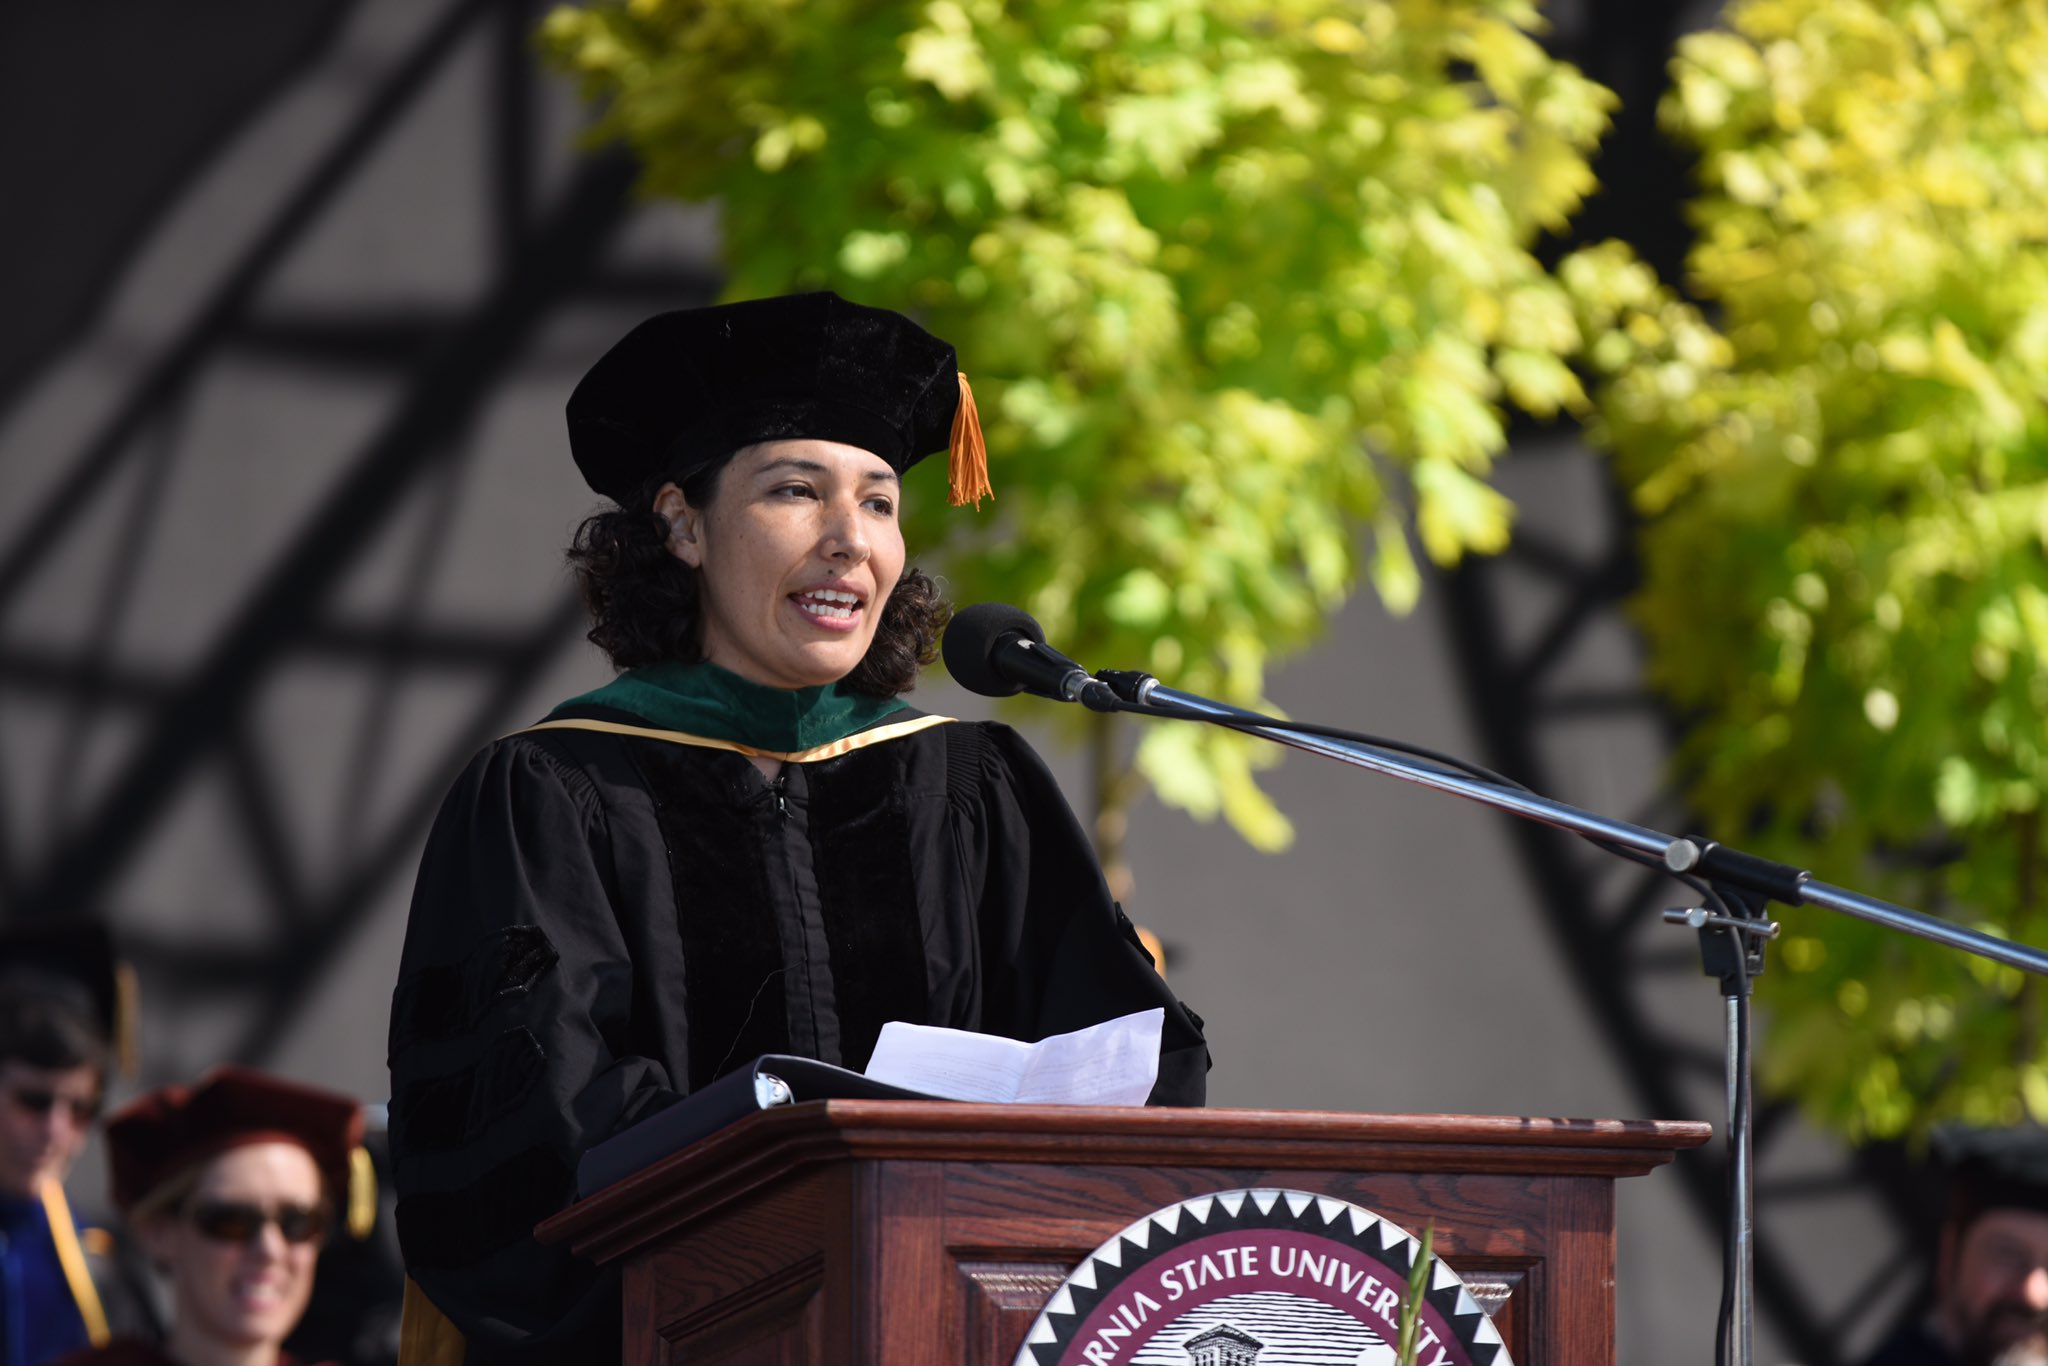 """I agree you can change the world. In fact, I say you have to."" –Teresa Munoz, '02 #Chic02016 https://t.co/phQaOCNIKM"